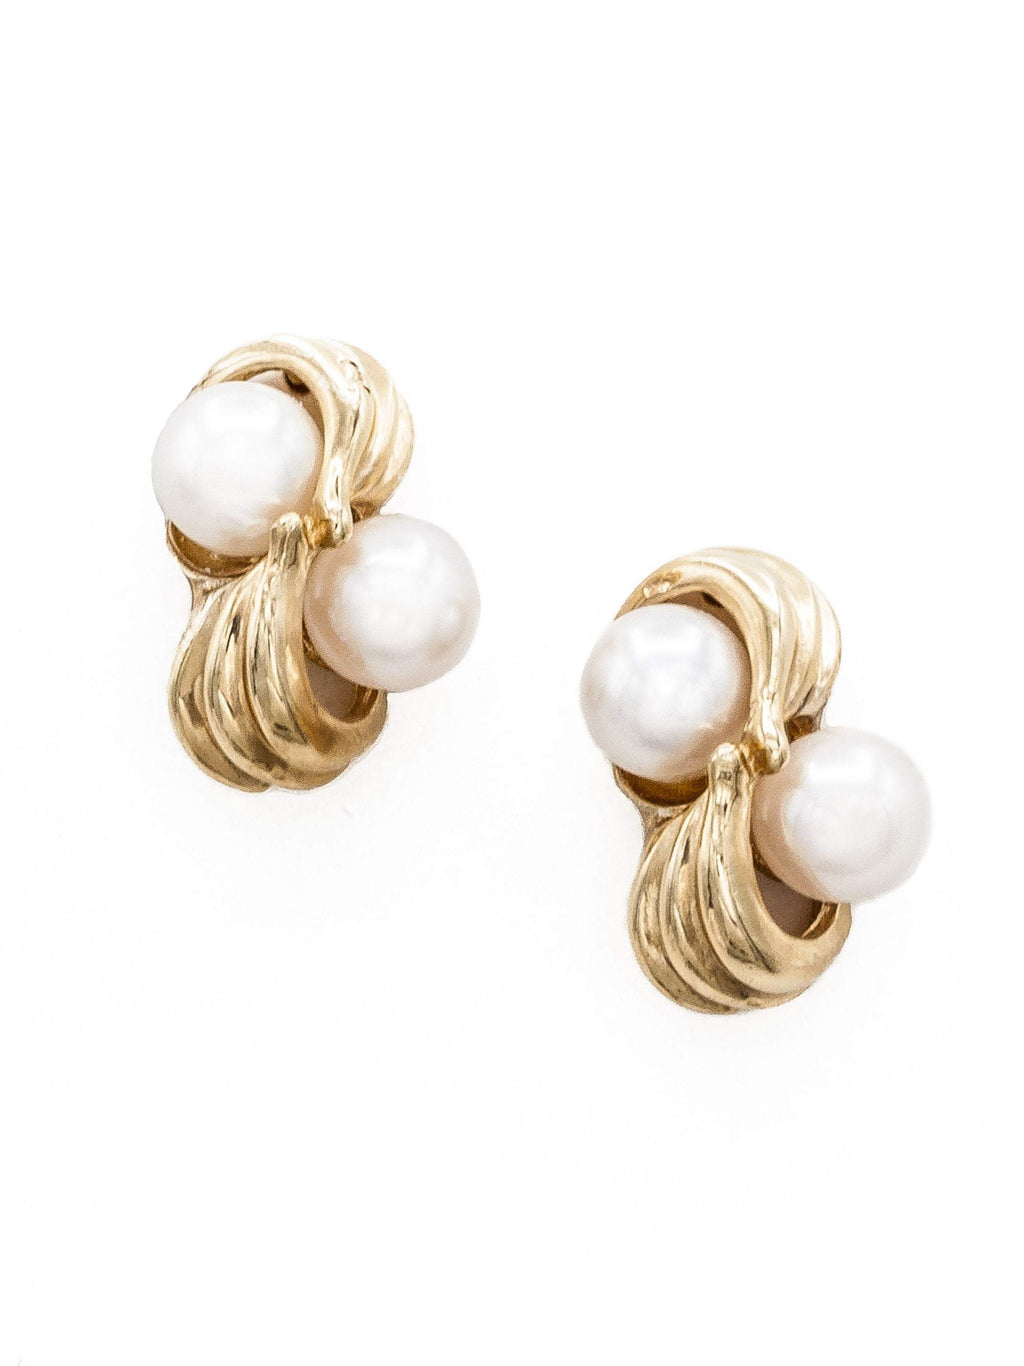 Gold Swirl Pearl Stud Earrings